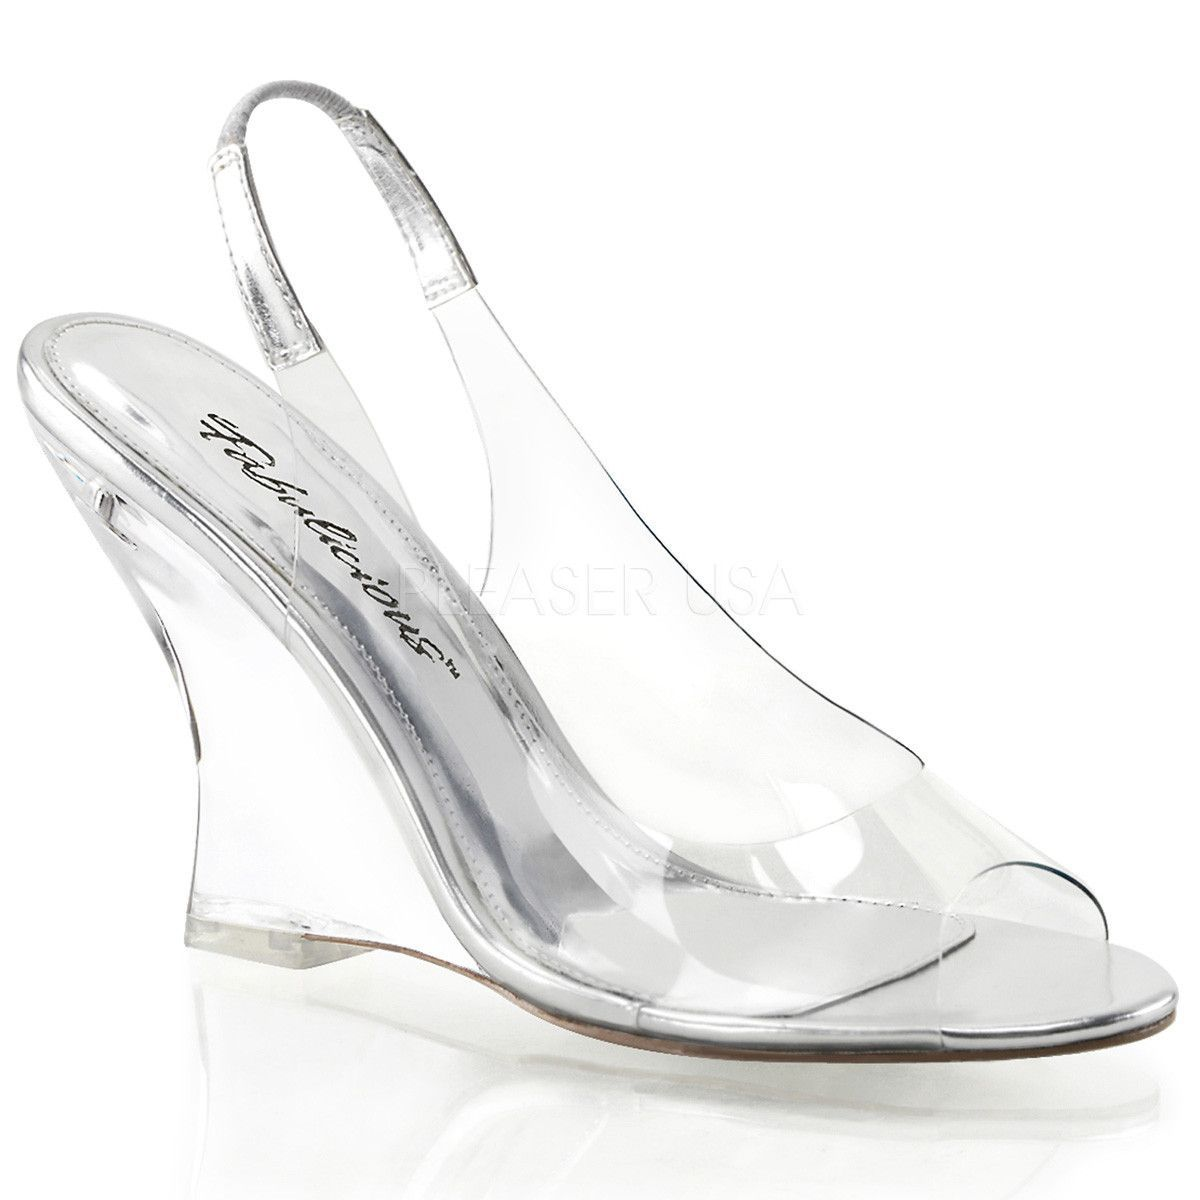 "FABULICIOUS Lovely-401RS 4/"" Wedge Party Prom Bridal Slide Sandal"